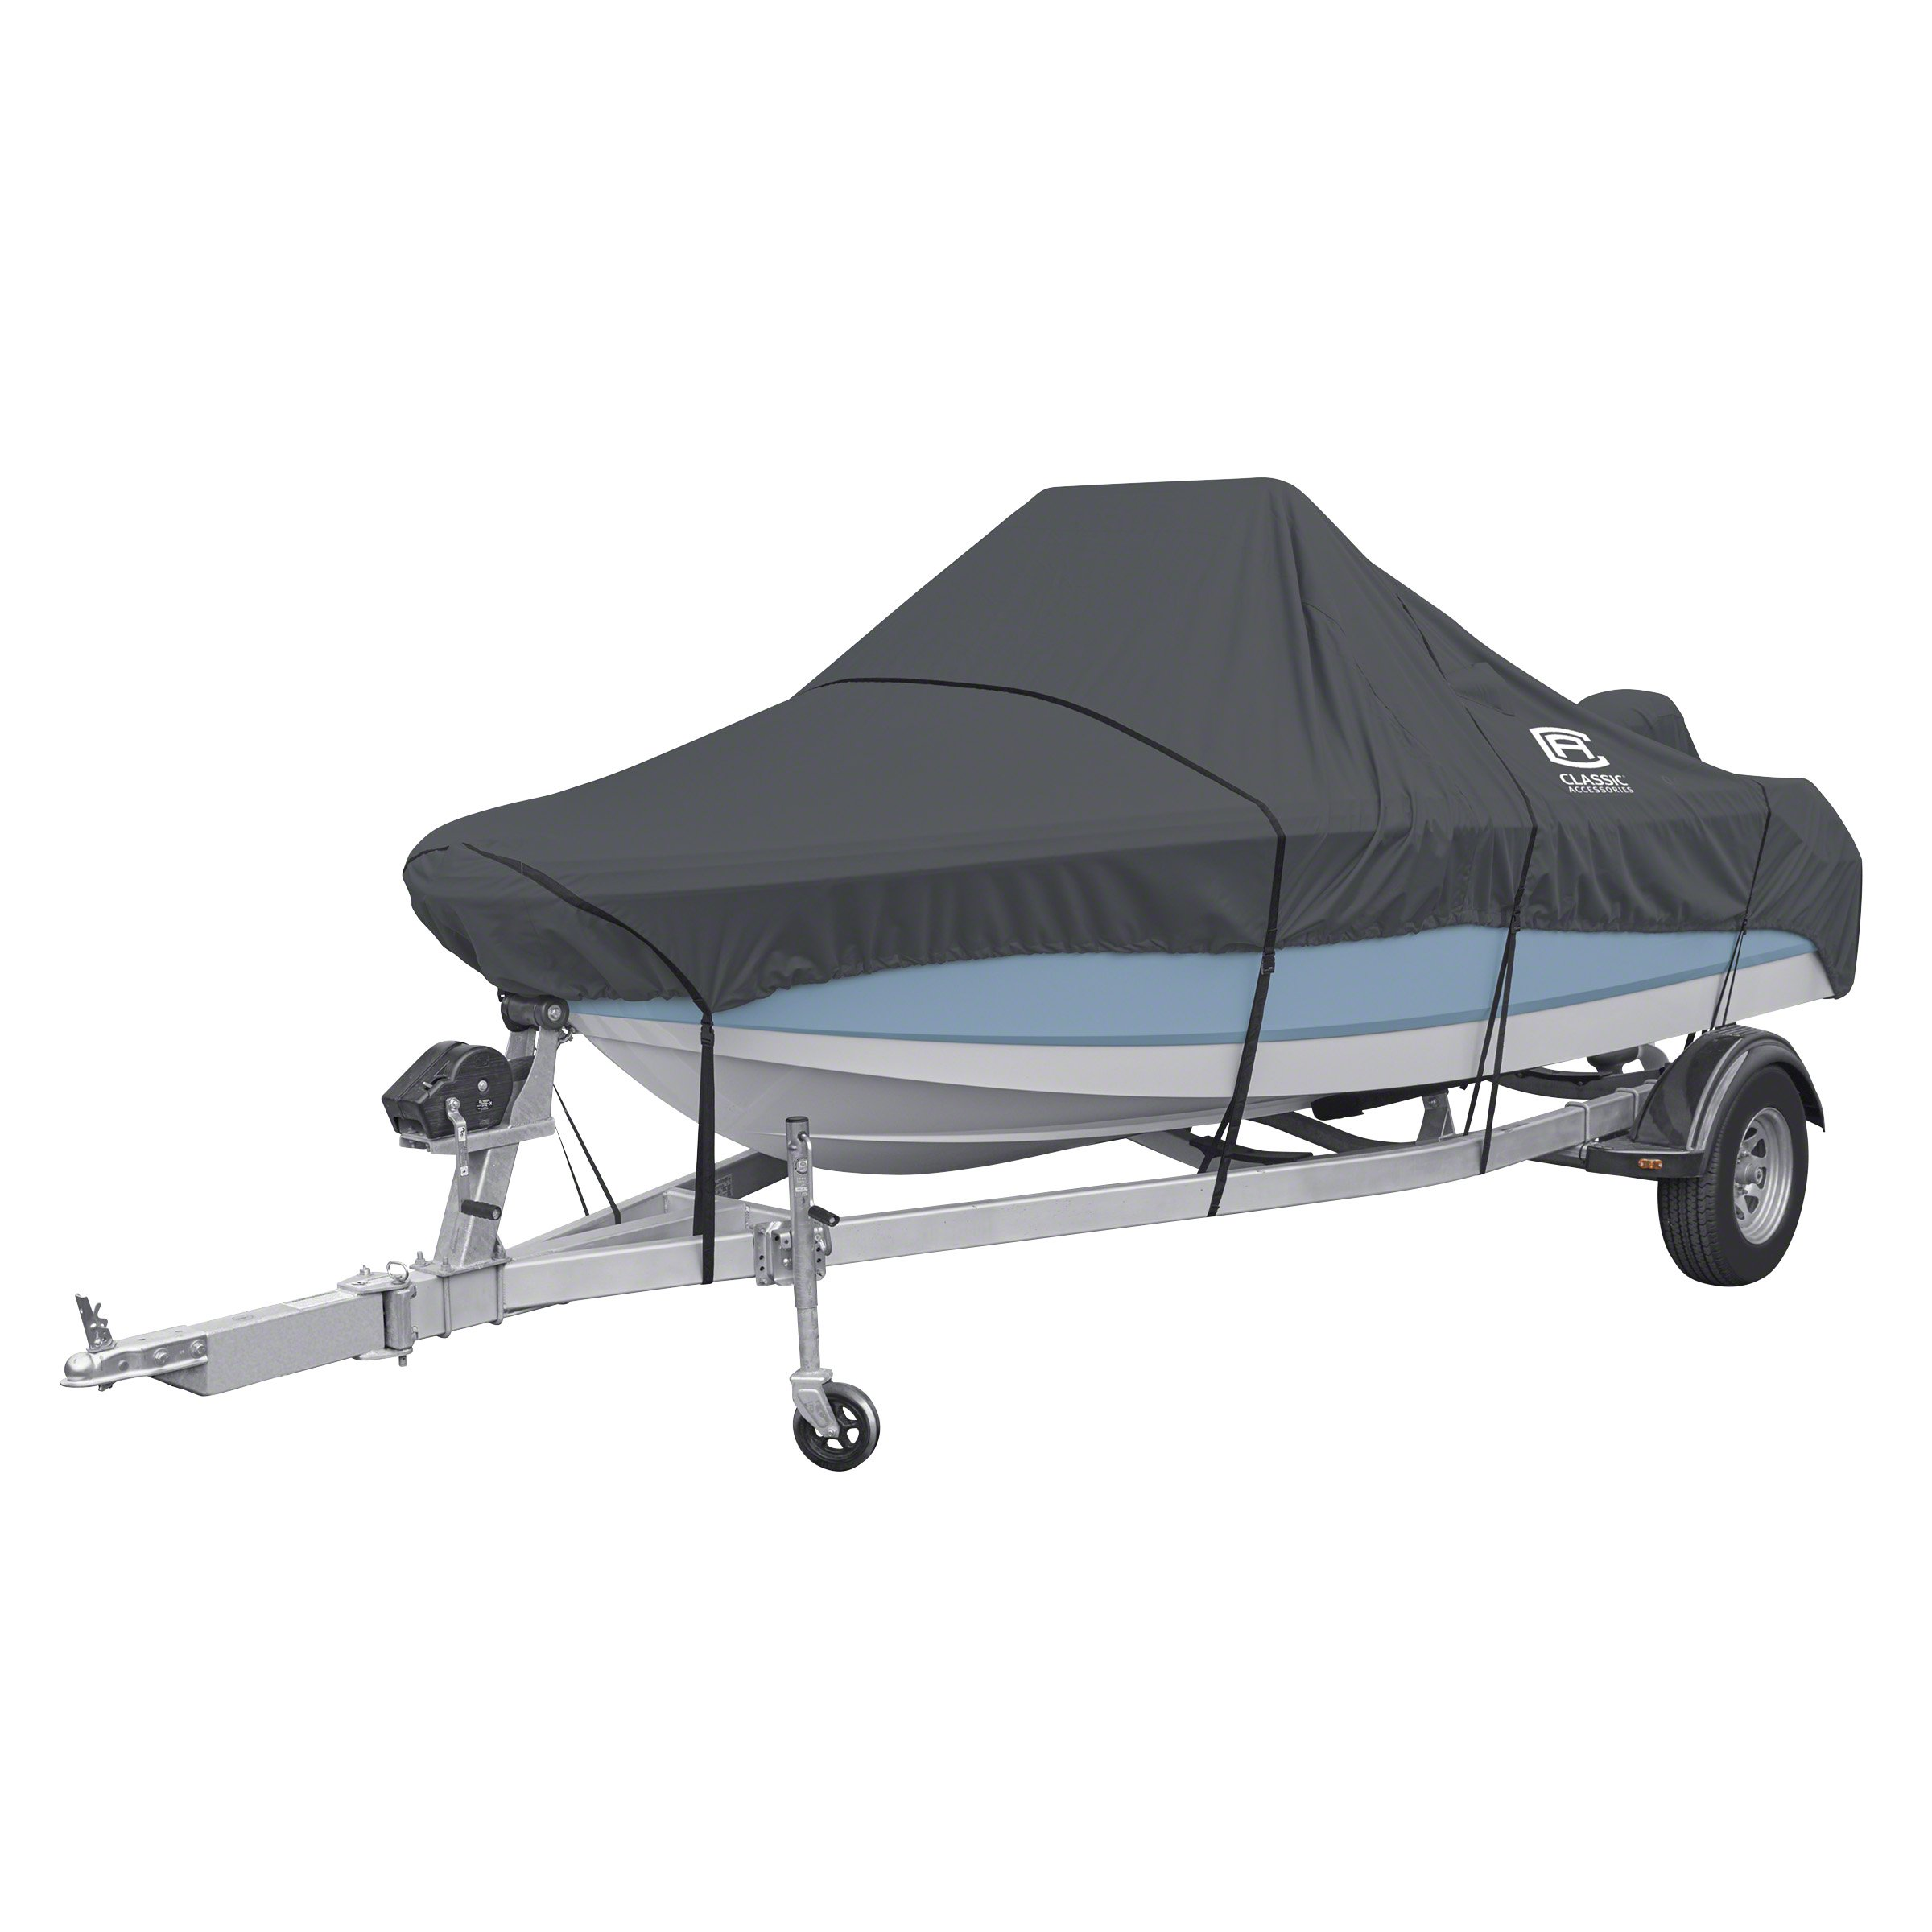 Classic Accessories StormPro Heavy Duty Center Console Boat Cover, For 17'-19' Long, Up to 102'' Beam Width by Classic Accessories